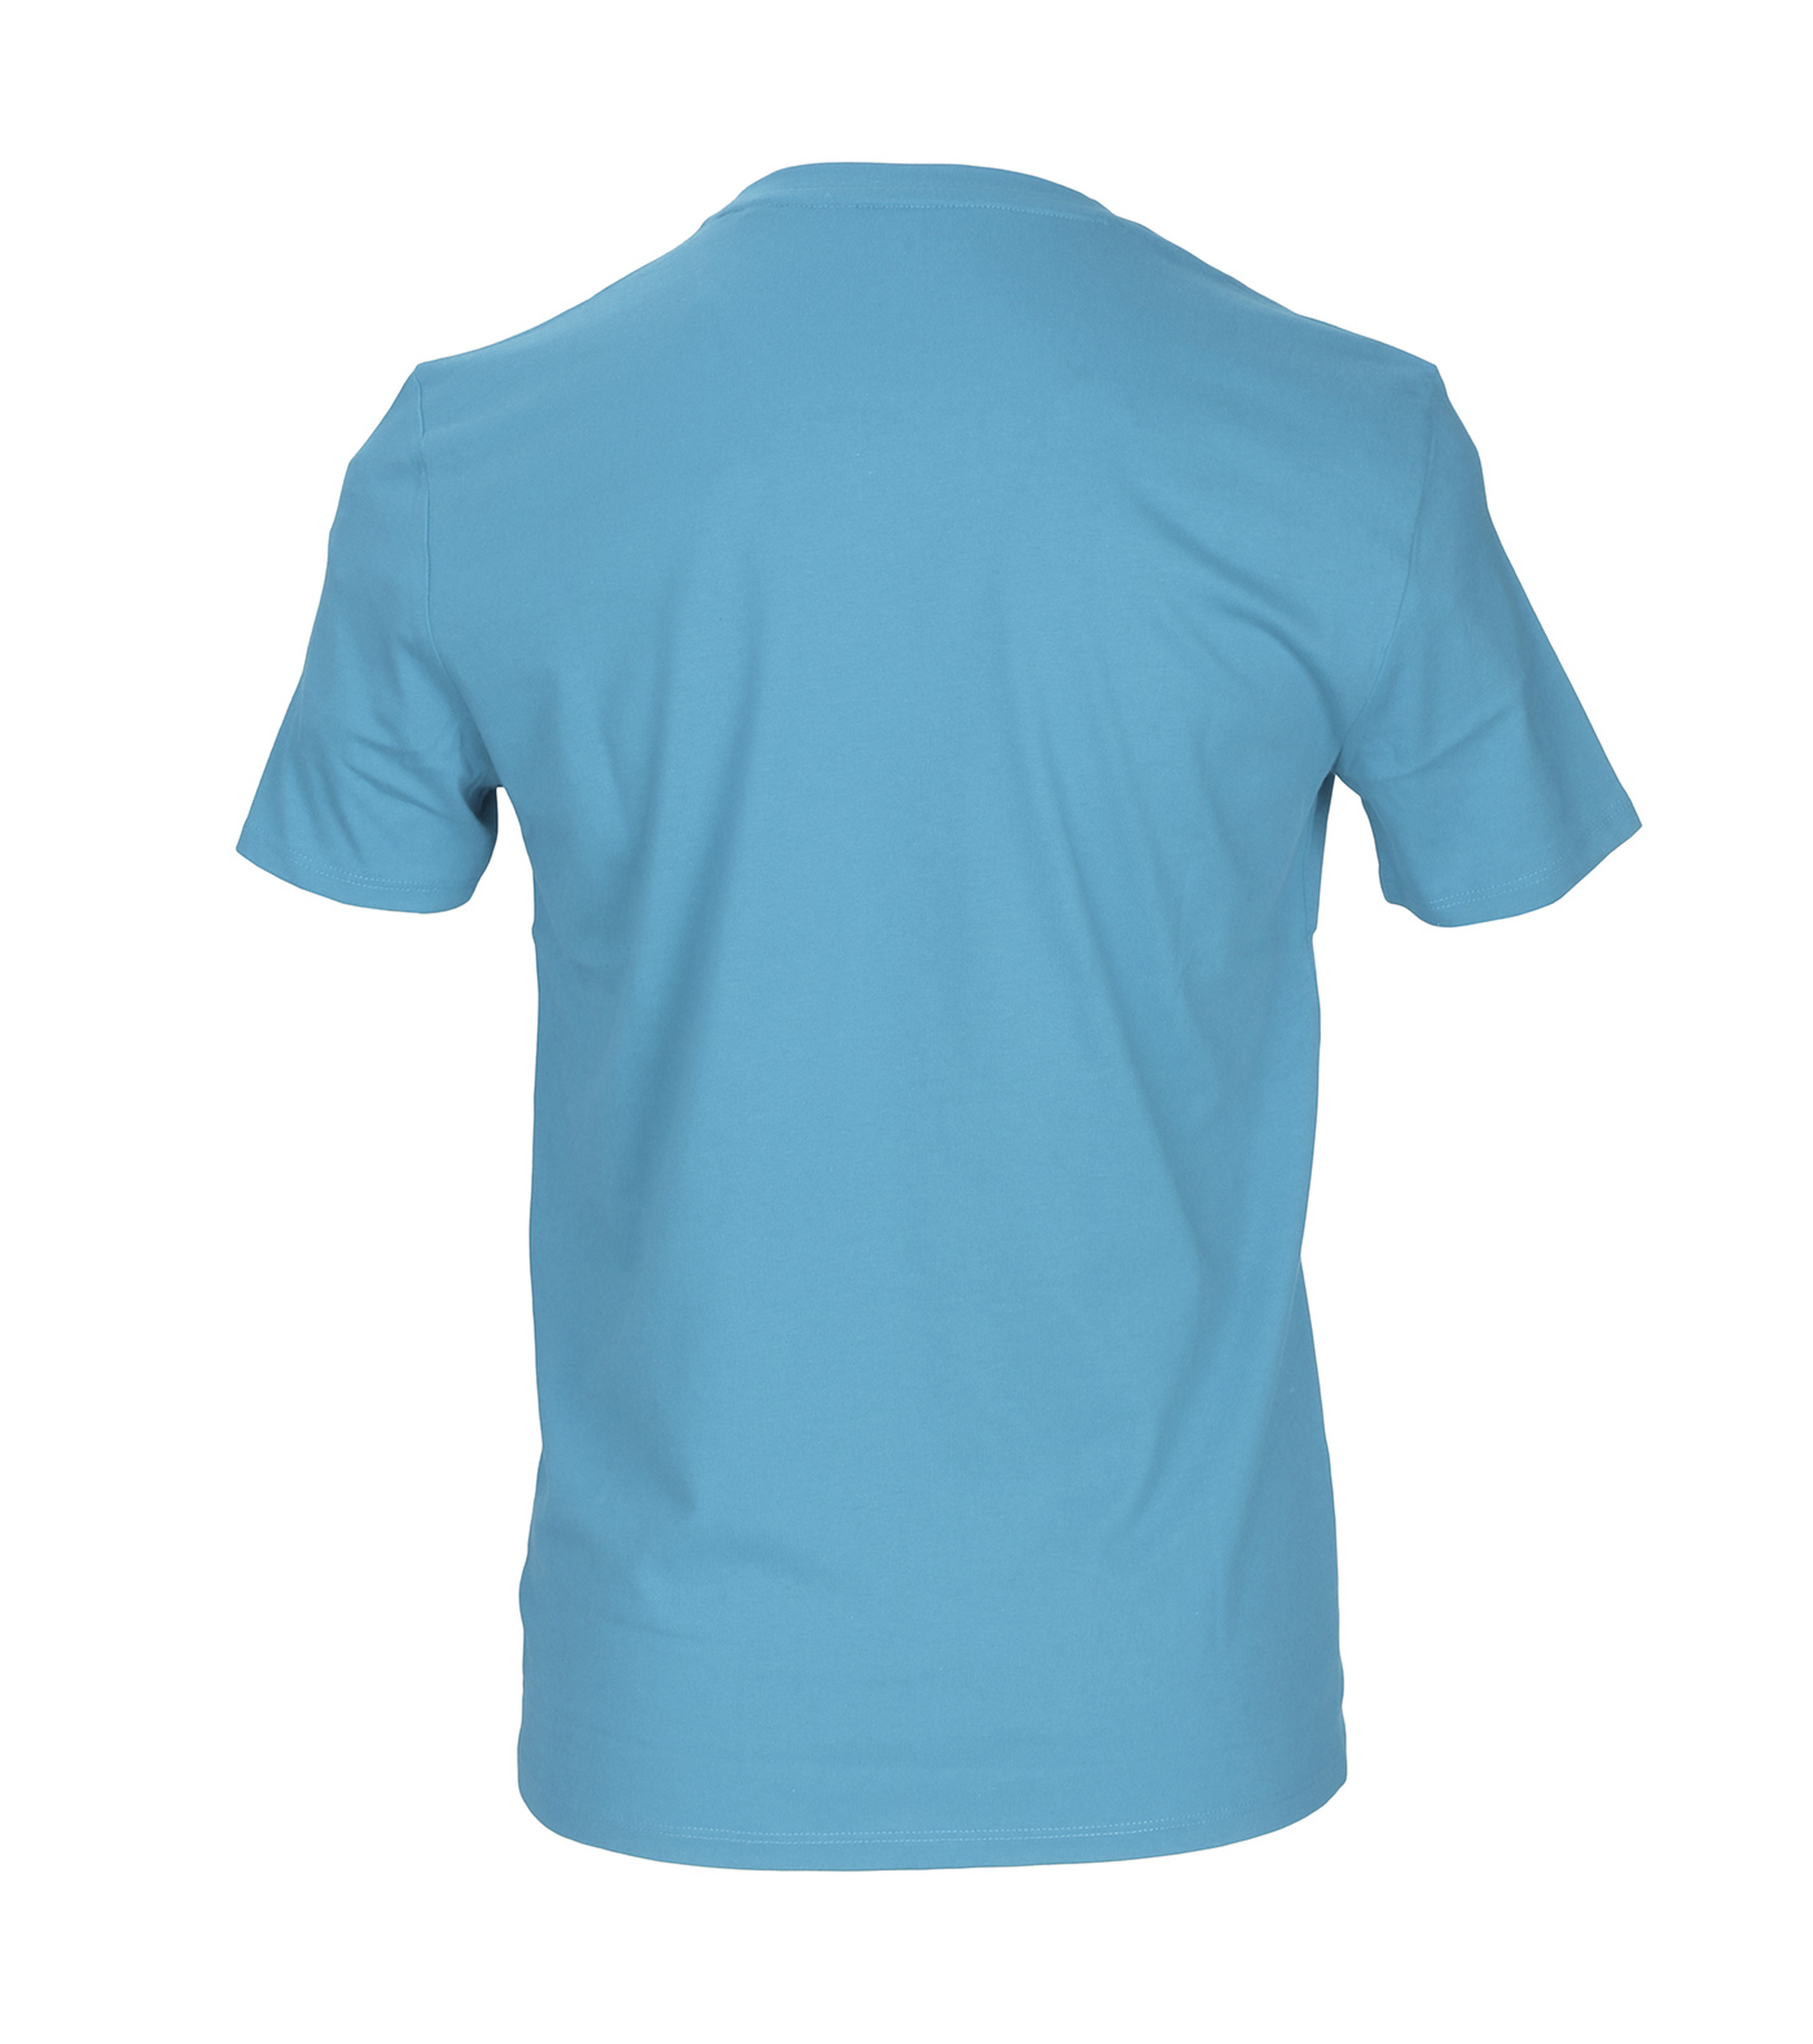 Marc O'Polo T-shirt Blauw foto 2